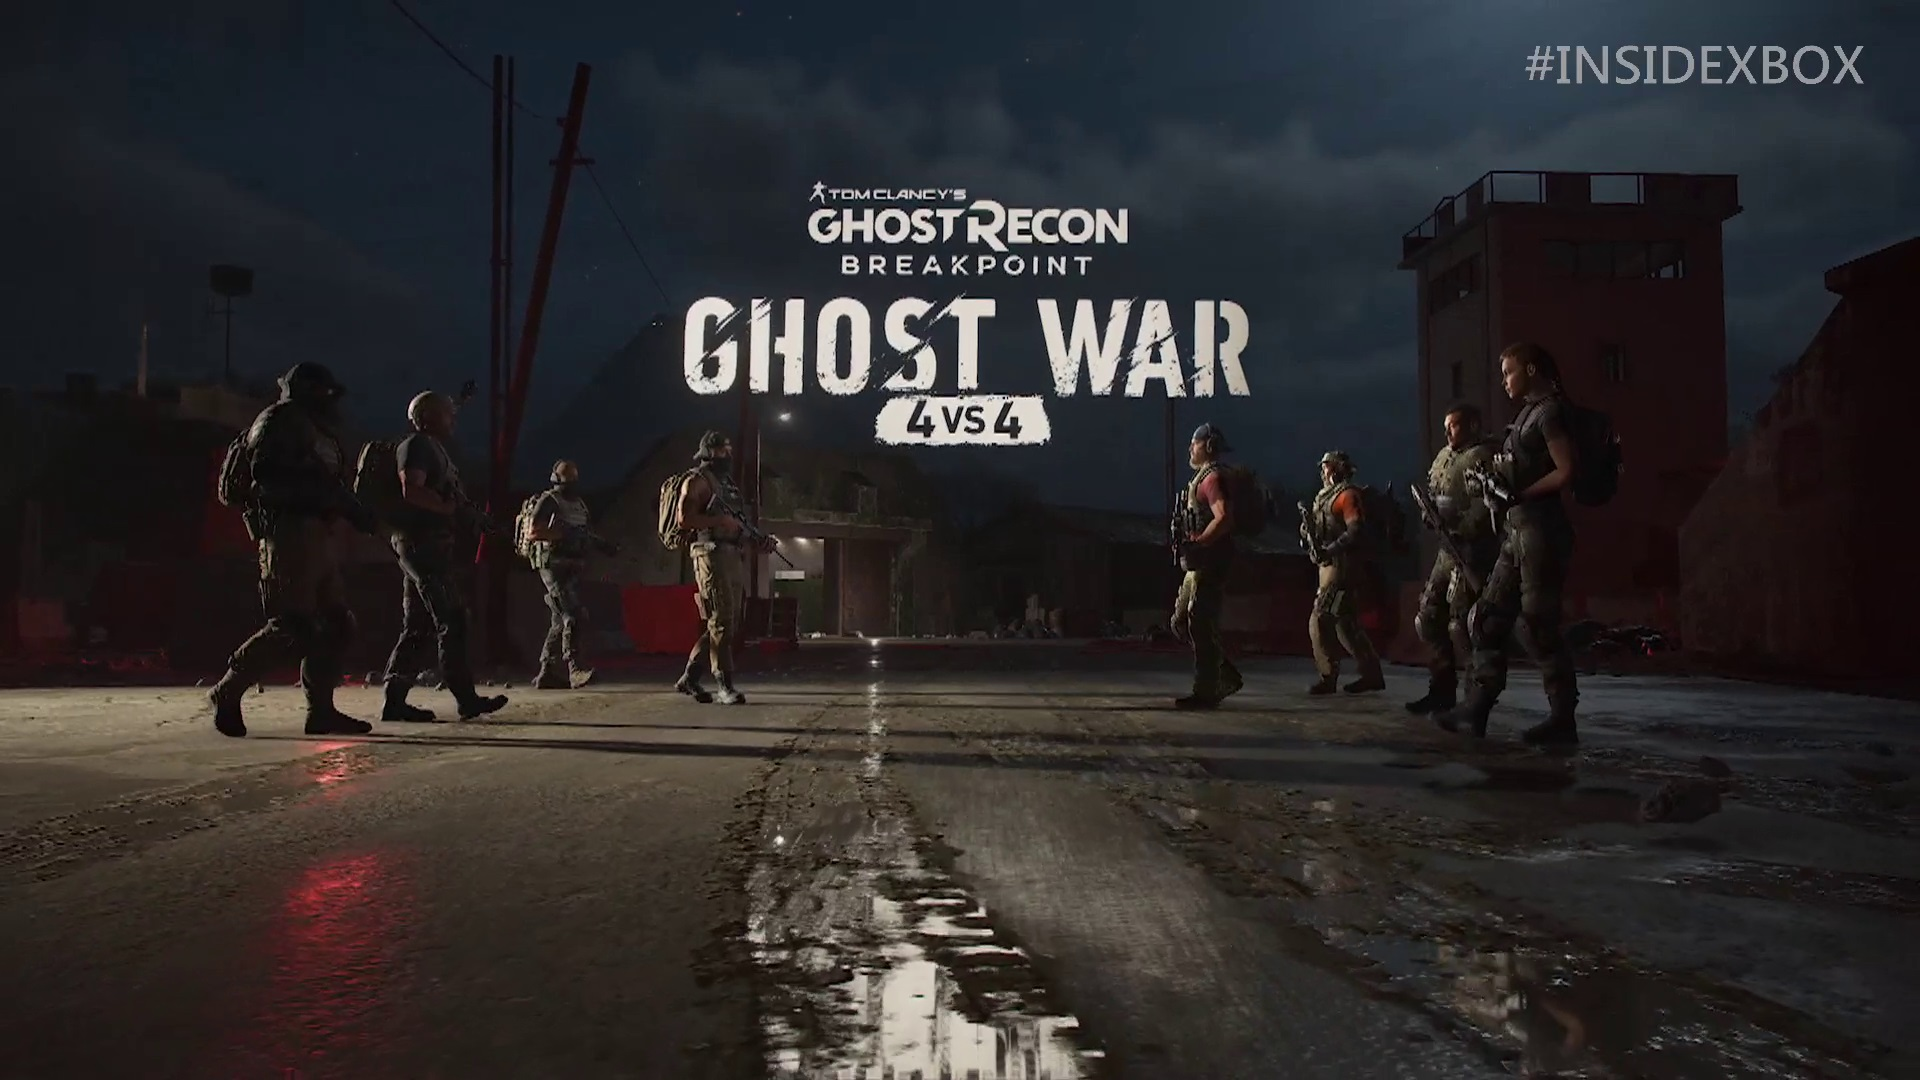 Ghost Recon Breakpoint Shows Off Ghost War Pvp Trailer At